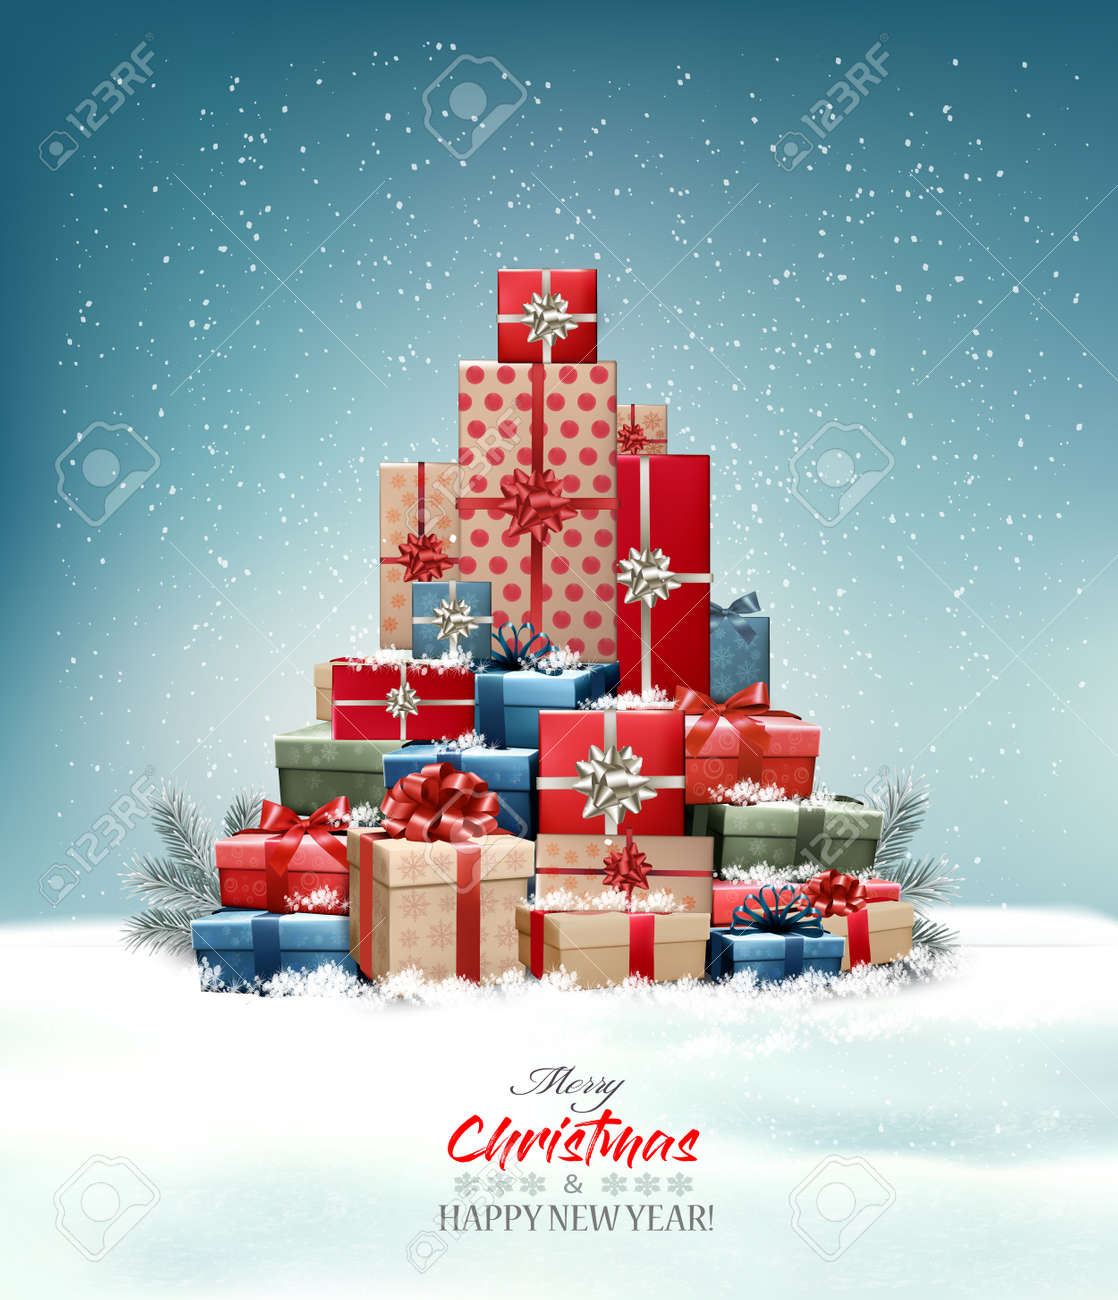 Retro holiday christmas background with christmas tree made out of colorful gift boxes and presents. Vector illustration - 159990787